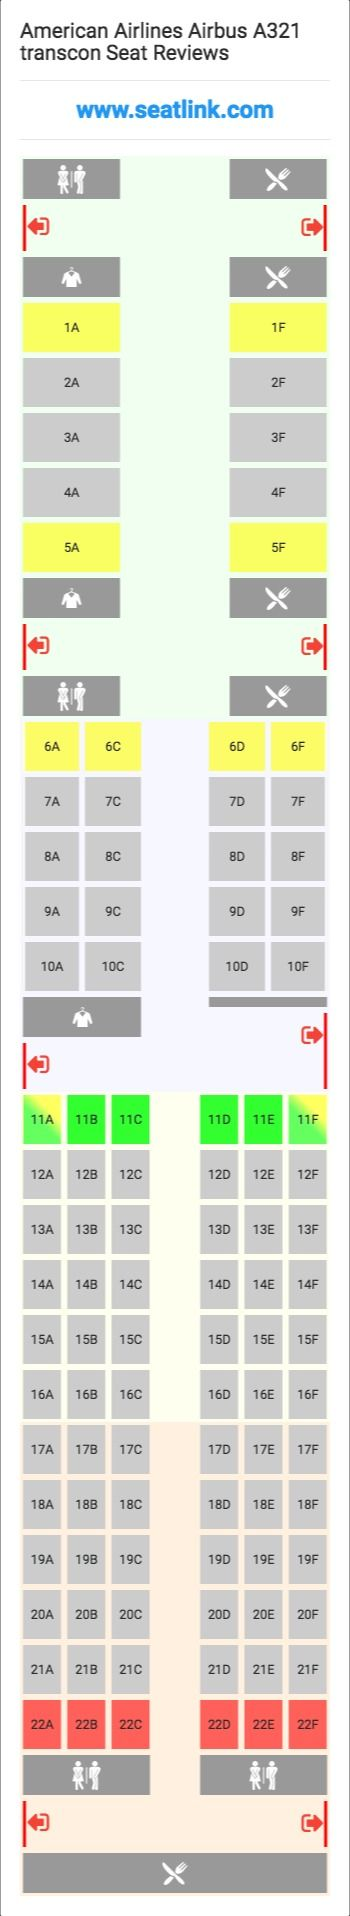 Oltre Fantastiche Idee Su Airbus A Seating Chart Su - Us airways a321 seat map